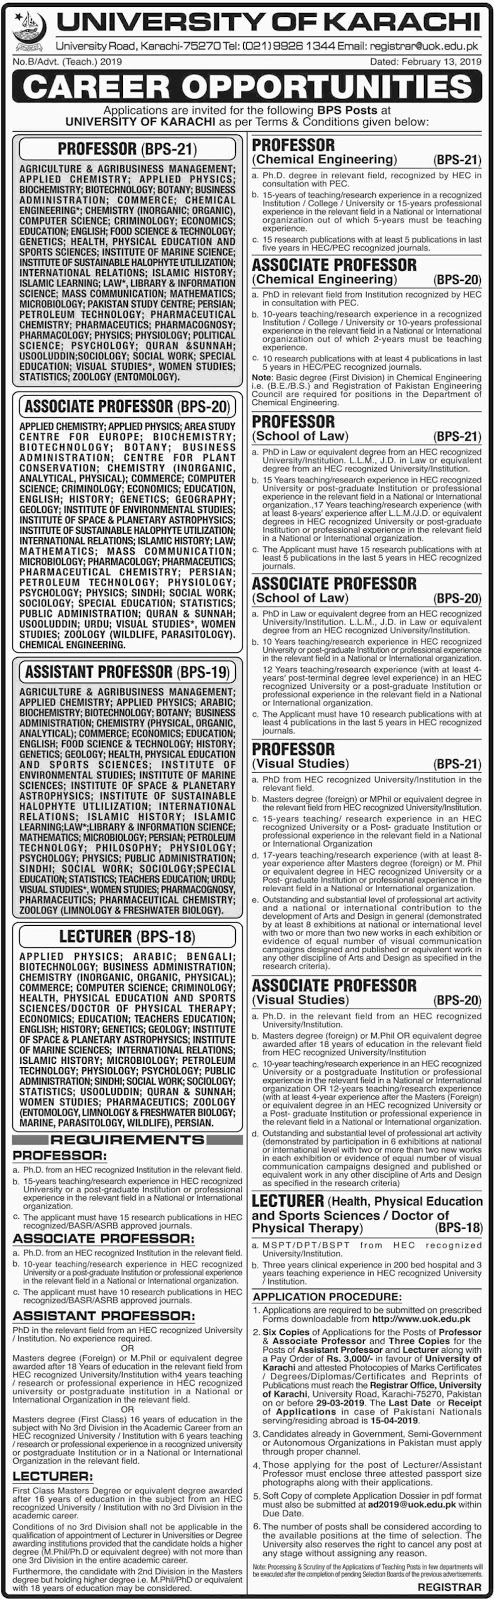 University of Karachi Jobs 2019 For Professor, Lecturer and others | Download Application Form